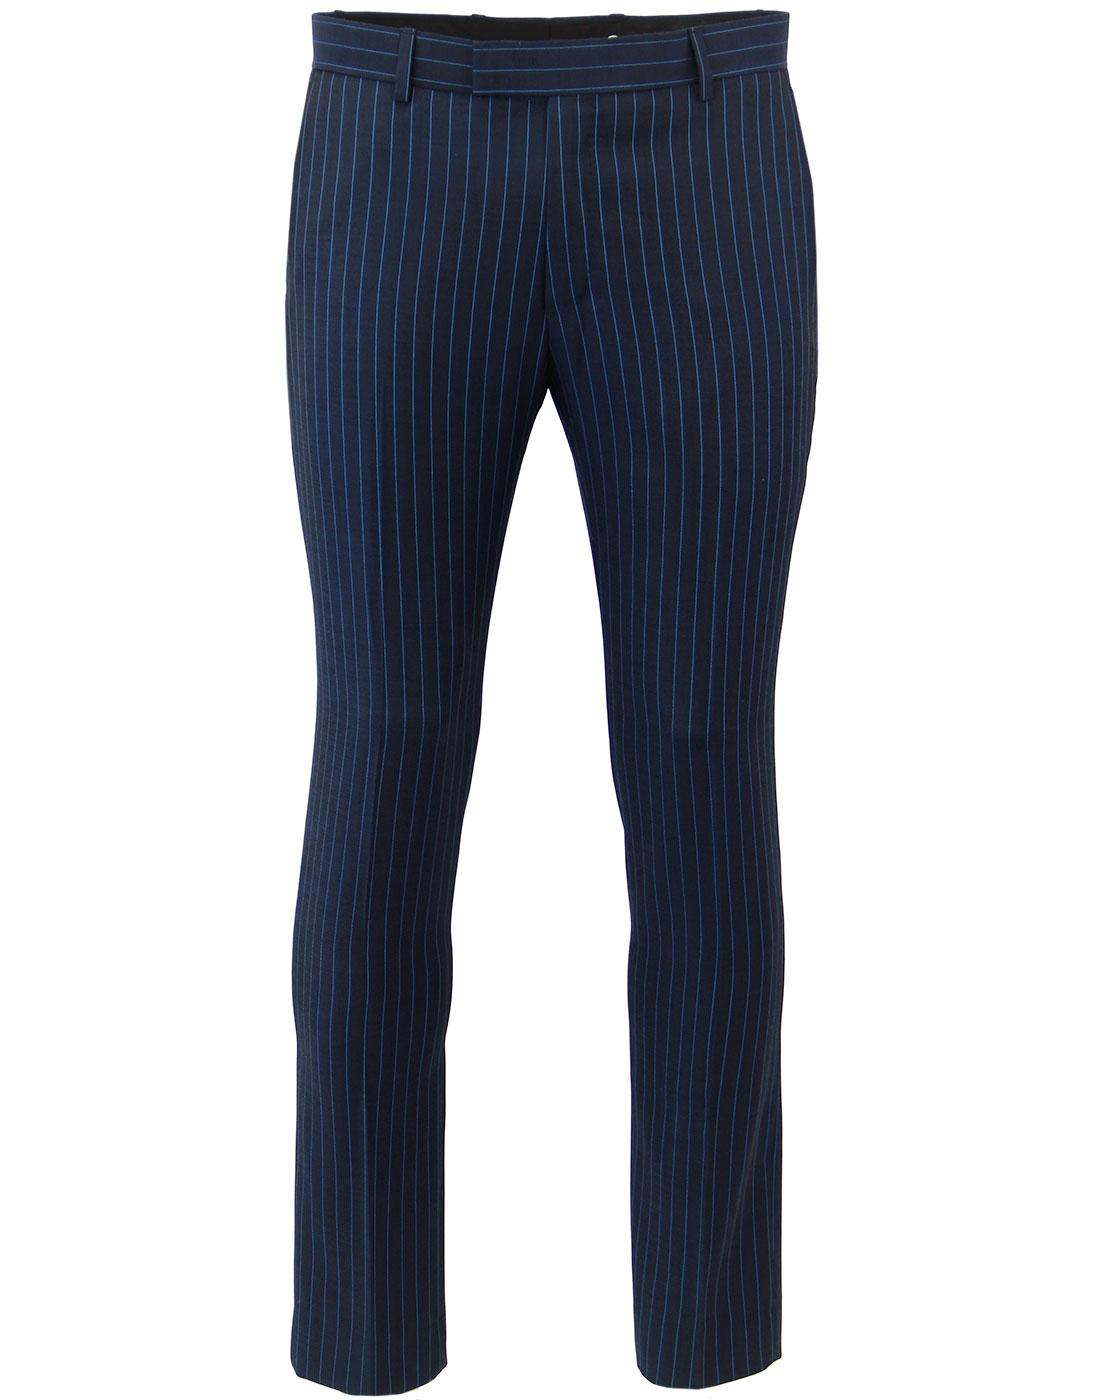 MADCAP ENGLAND Electric Pinstripe 60s Mod Trousers